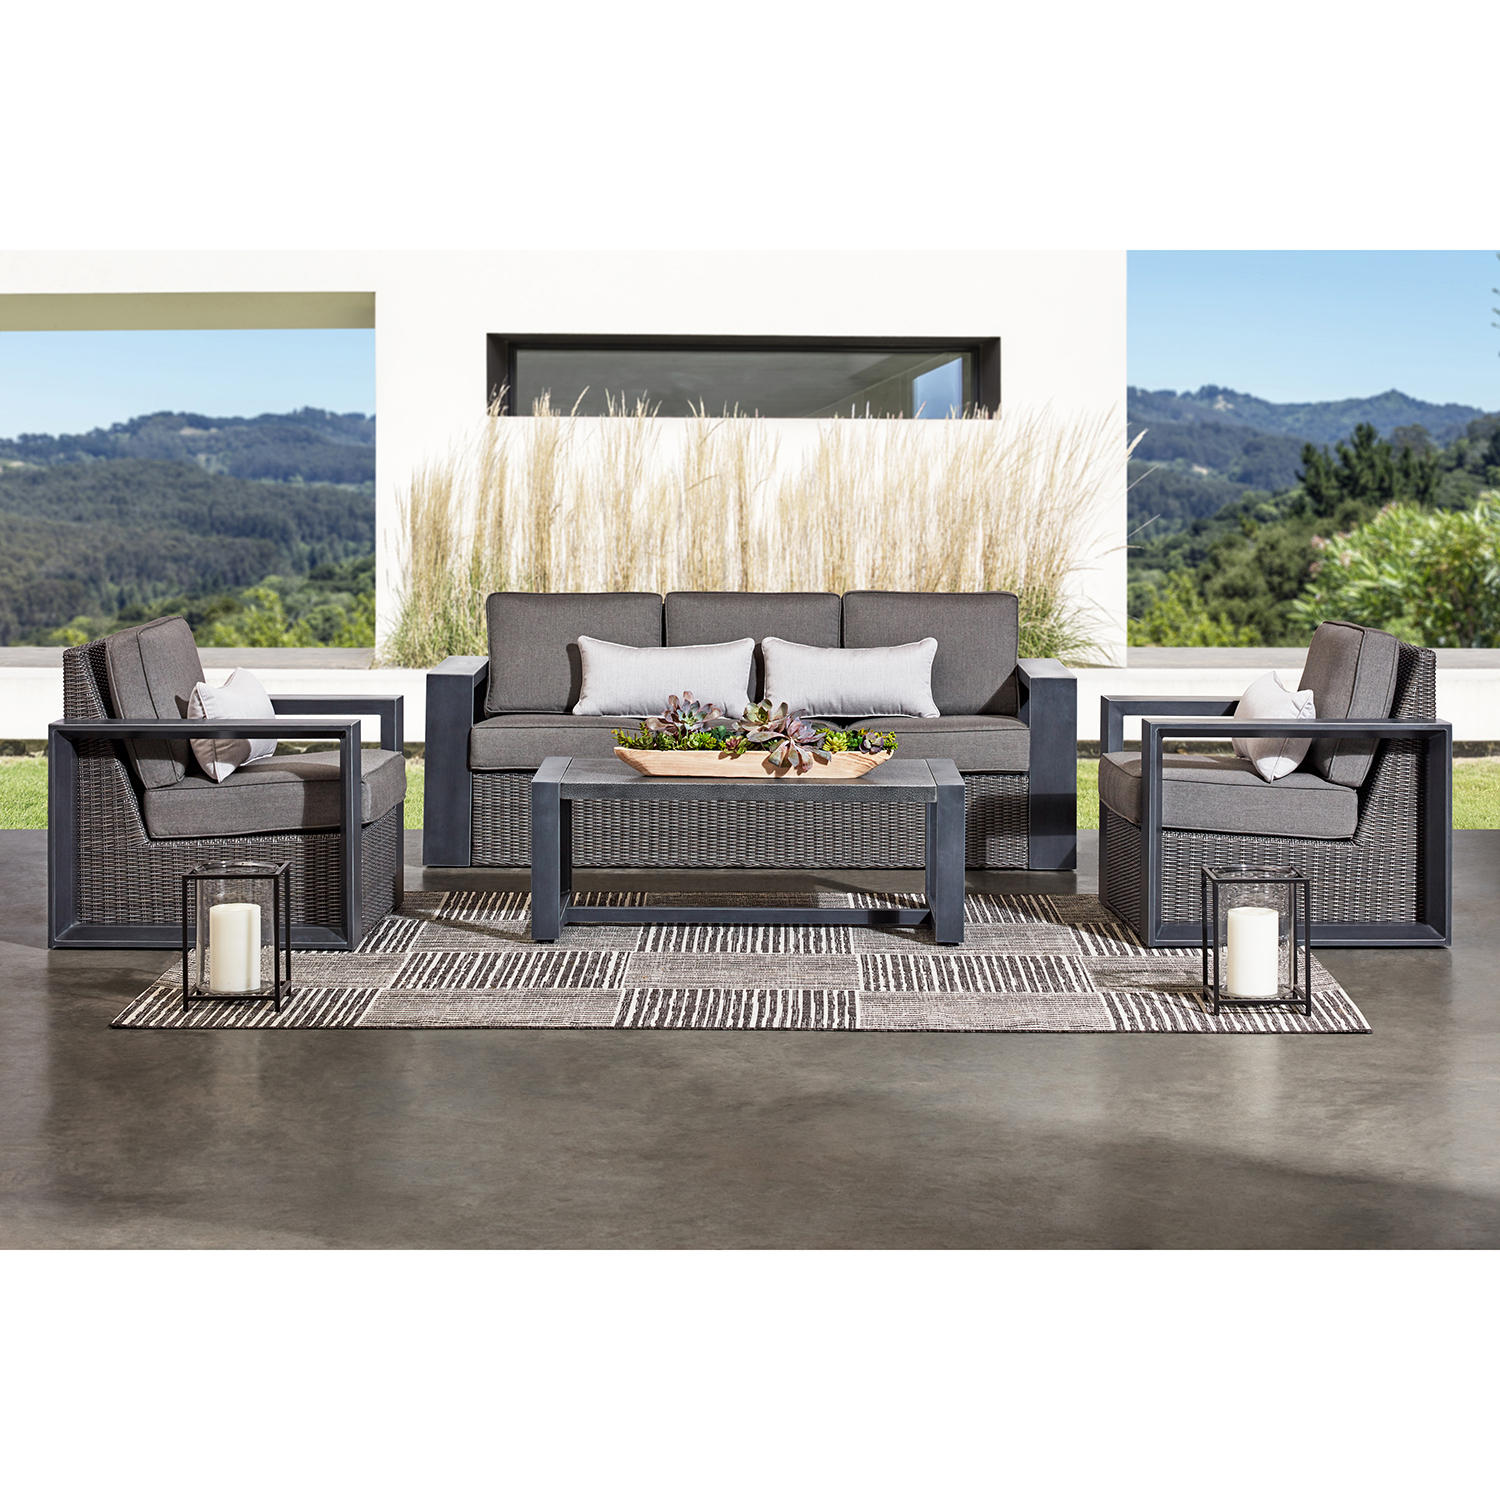 Member's Mark Adler 4-Piece Patio Seating Sofa Set